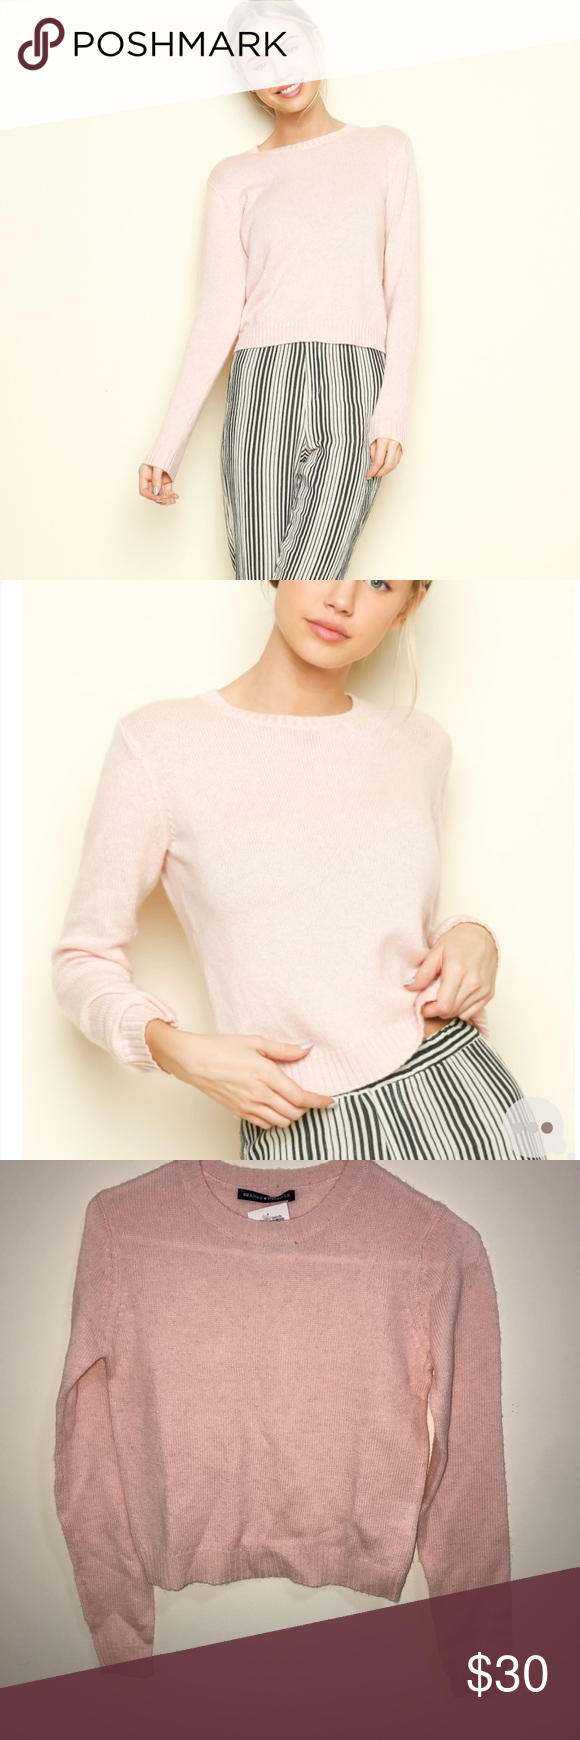 Brandy Melville pink crop sweater Pink cropped sweater Brandy Melville Sweaters